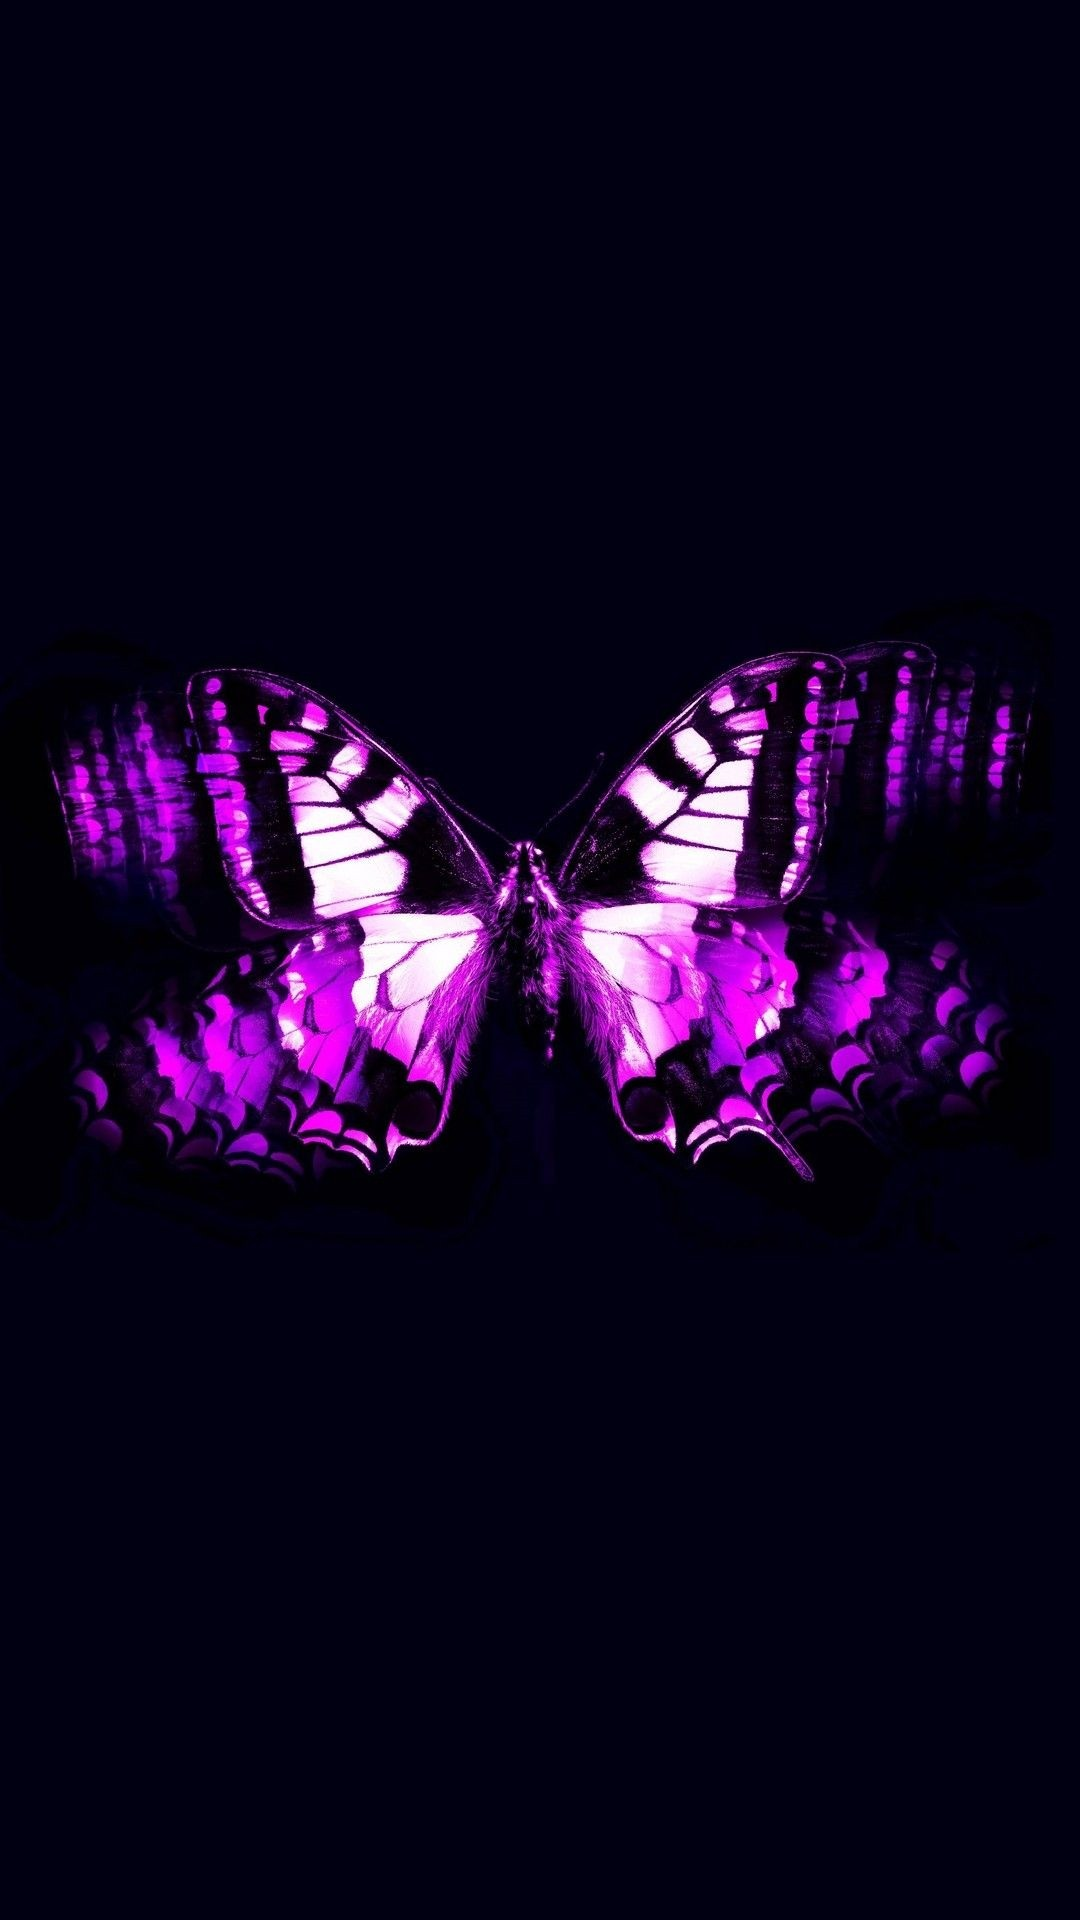 Aesthetic Butterfly hd wallpaper for mobile